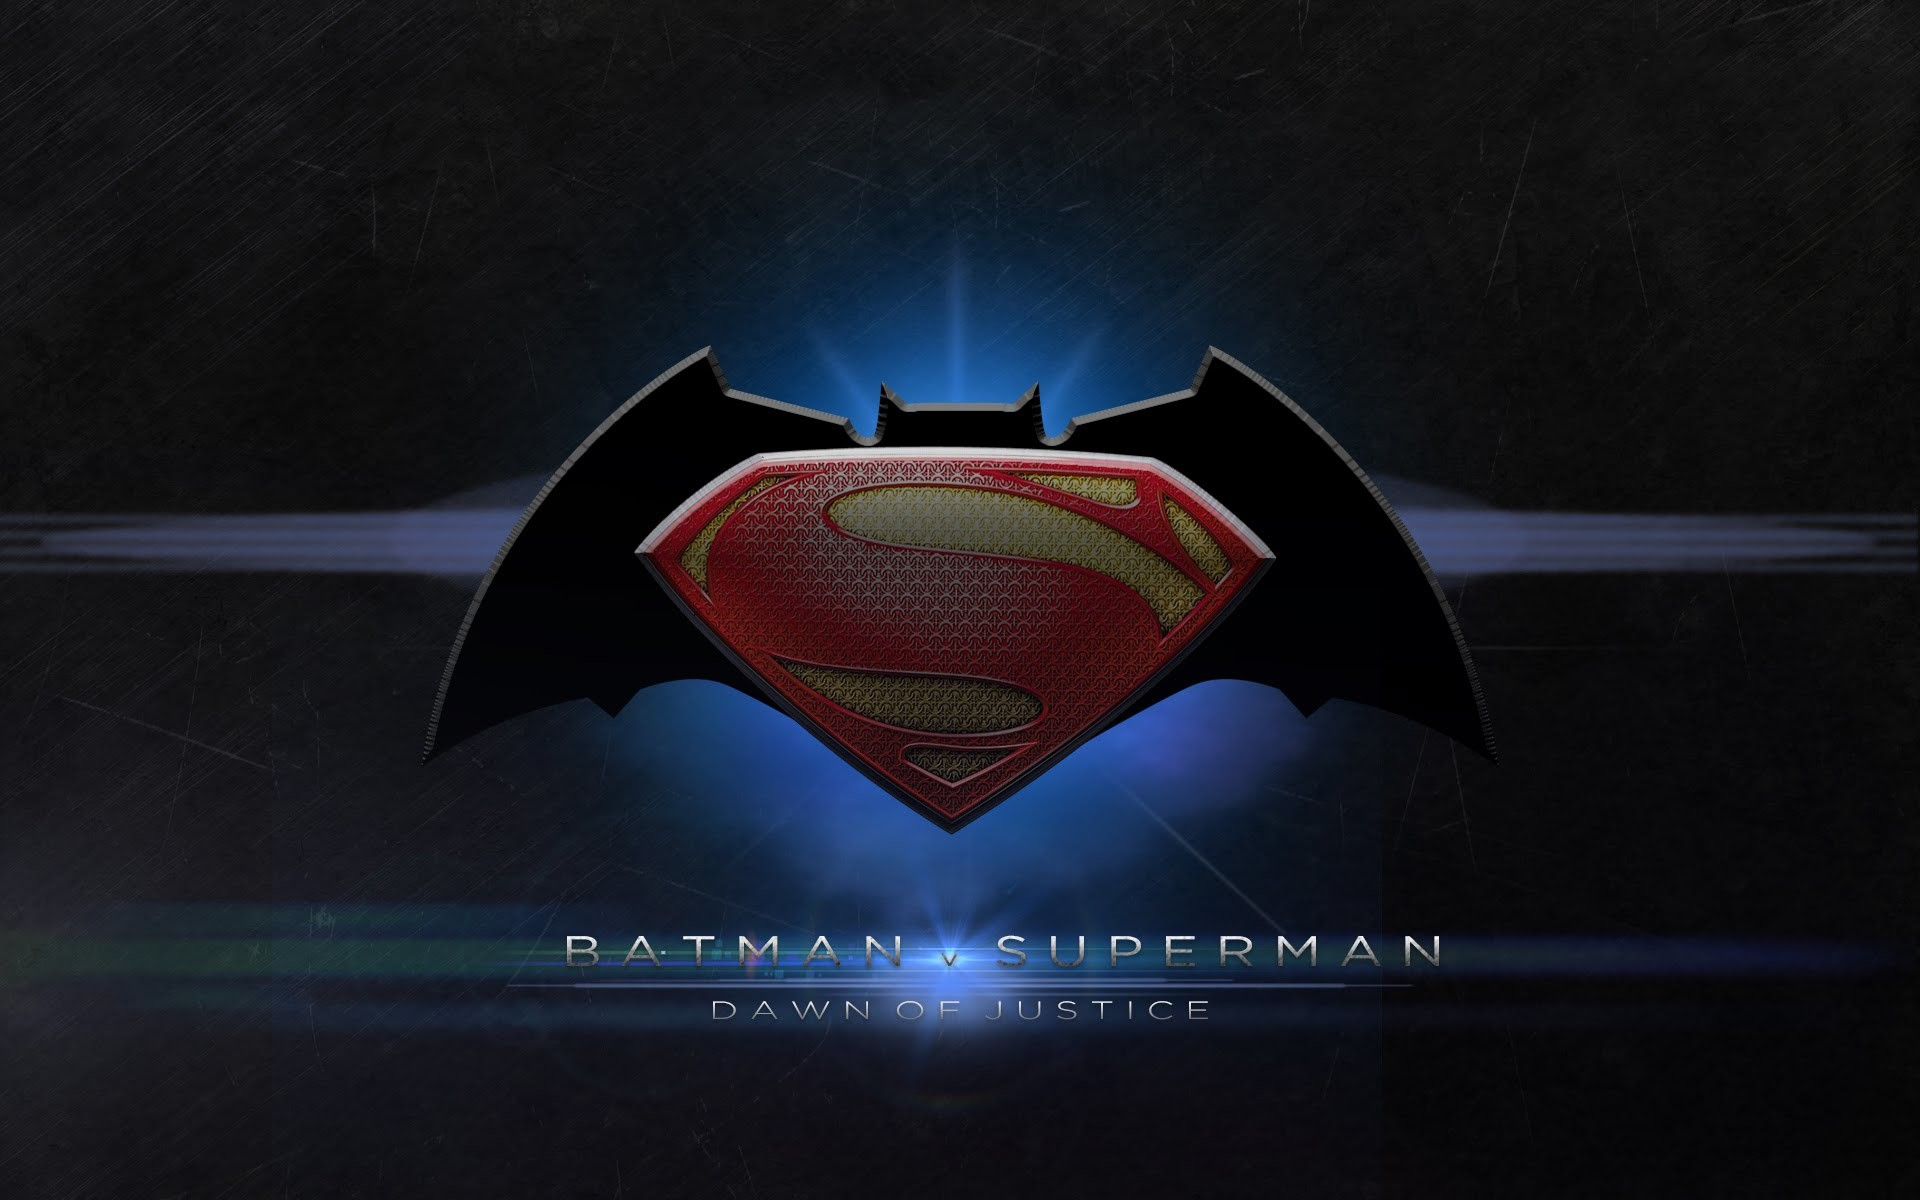 1920x1200 Batman v Superman logo Computer Wallpapers, Desktop Backgrounds .